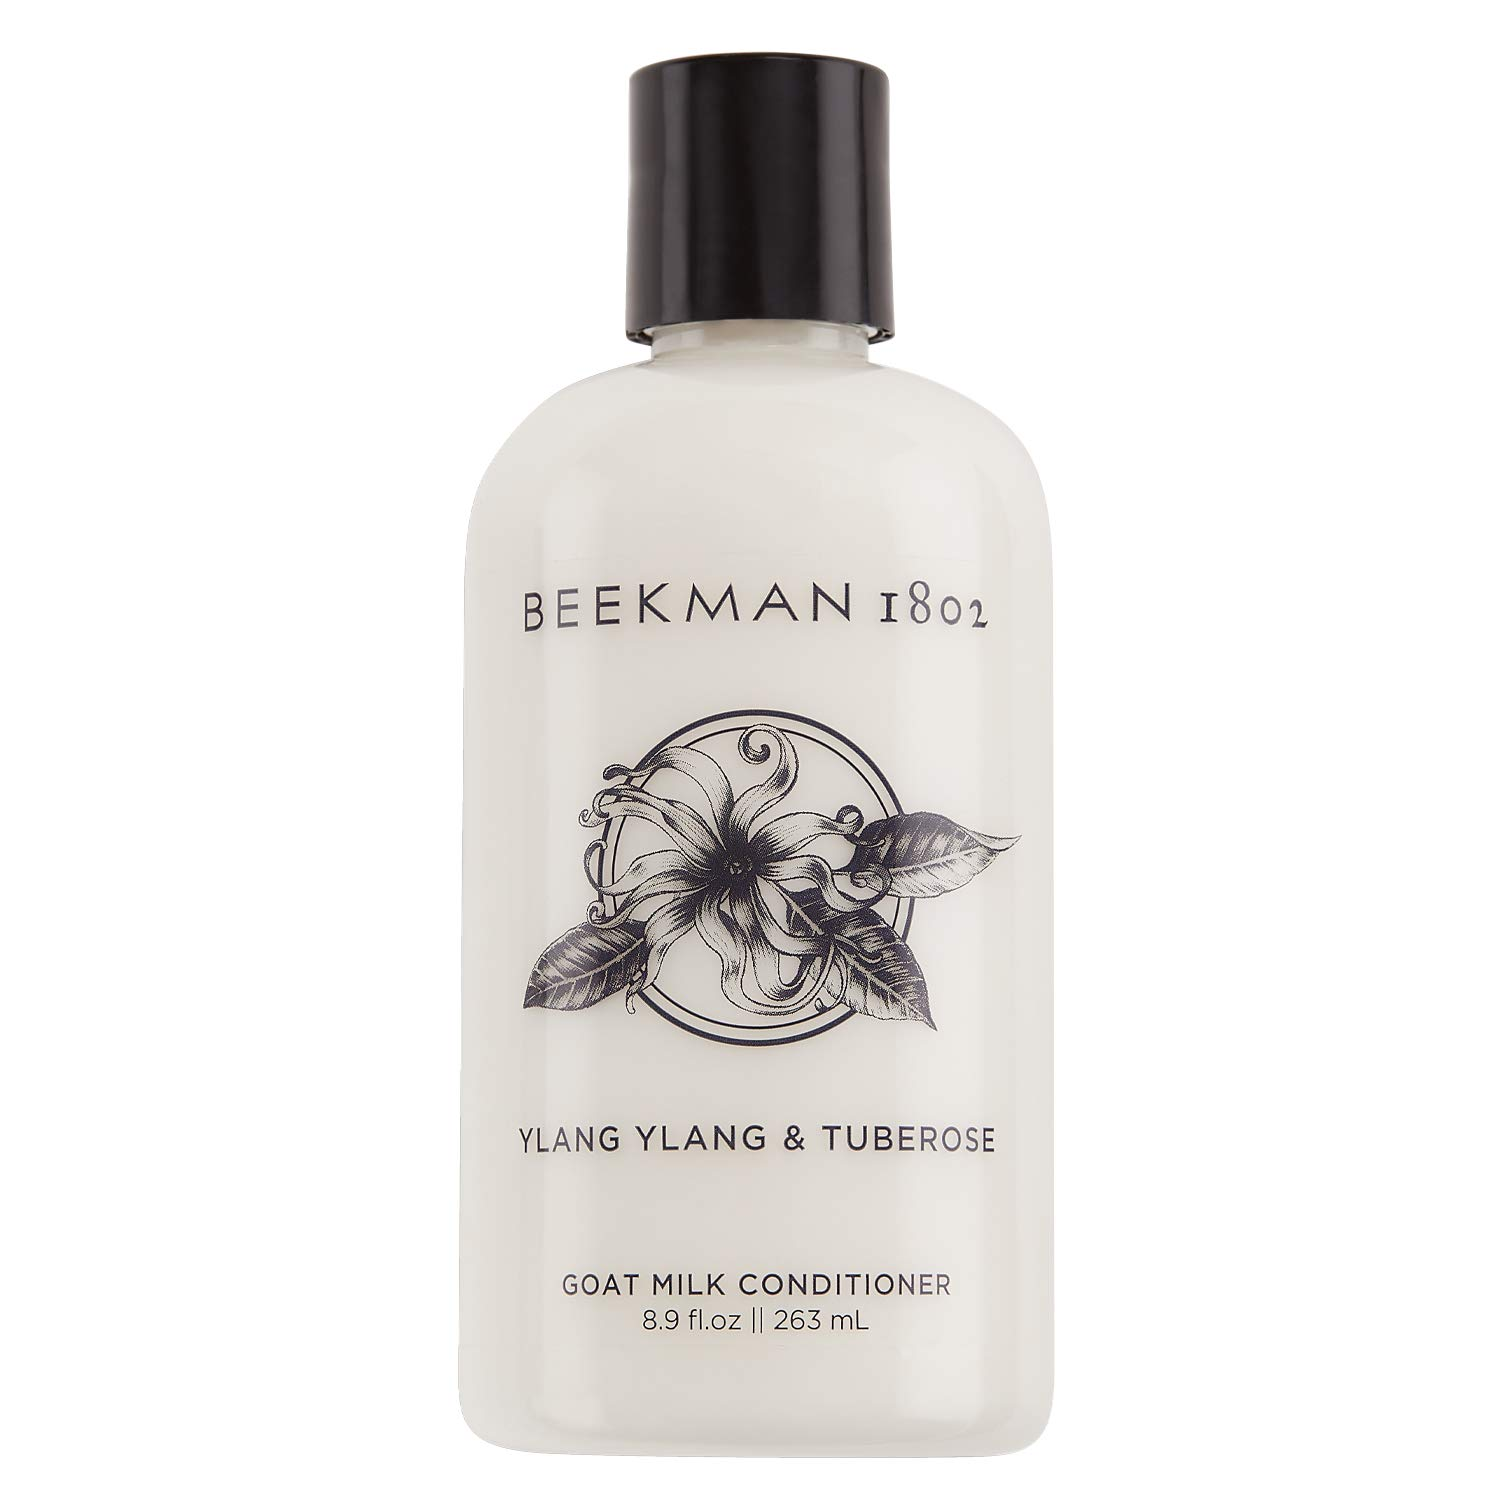 Beekman 1802 - Conditioner - Ylang Ylang & Tuberose - Goat Milk Hair Conditioner - Naturally Rich in Lactic Acid & Vitamins - Cruelty-Free Goat Milk Hair Care - 8.9 oz